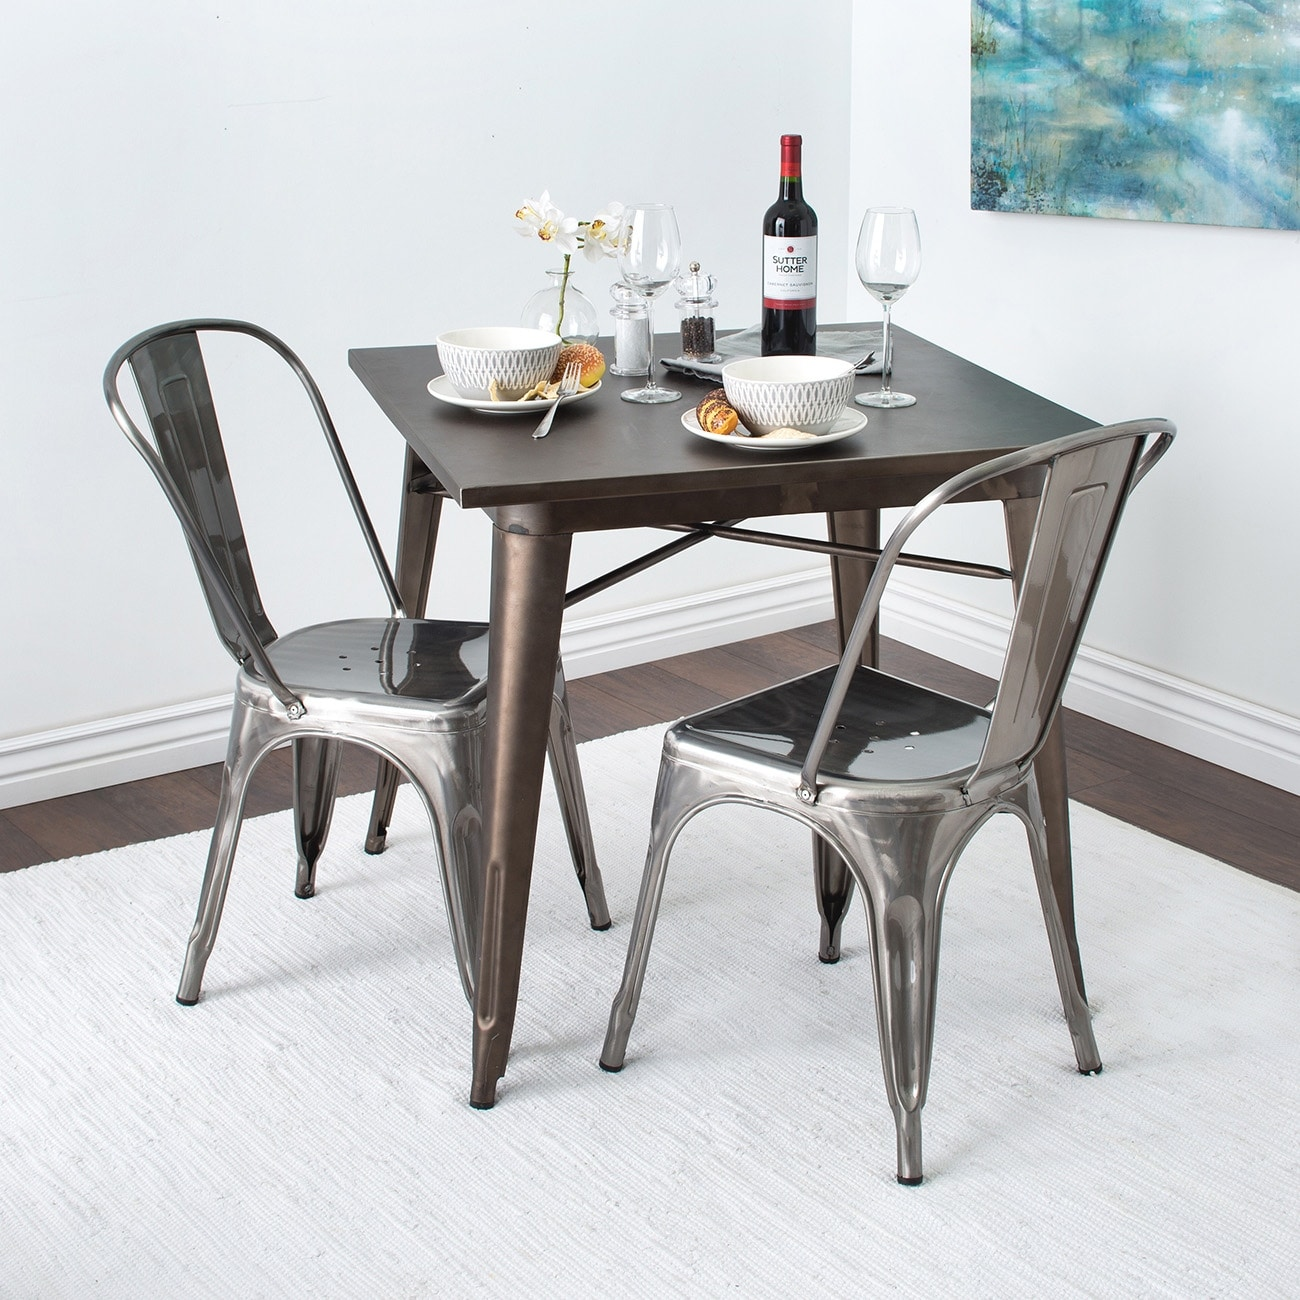 Trattoria Dining Chair, Metal, Stackable, Set of (4), Gunmetal ...